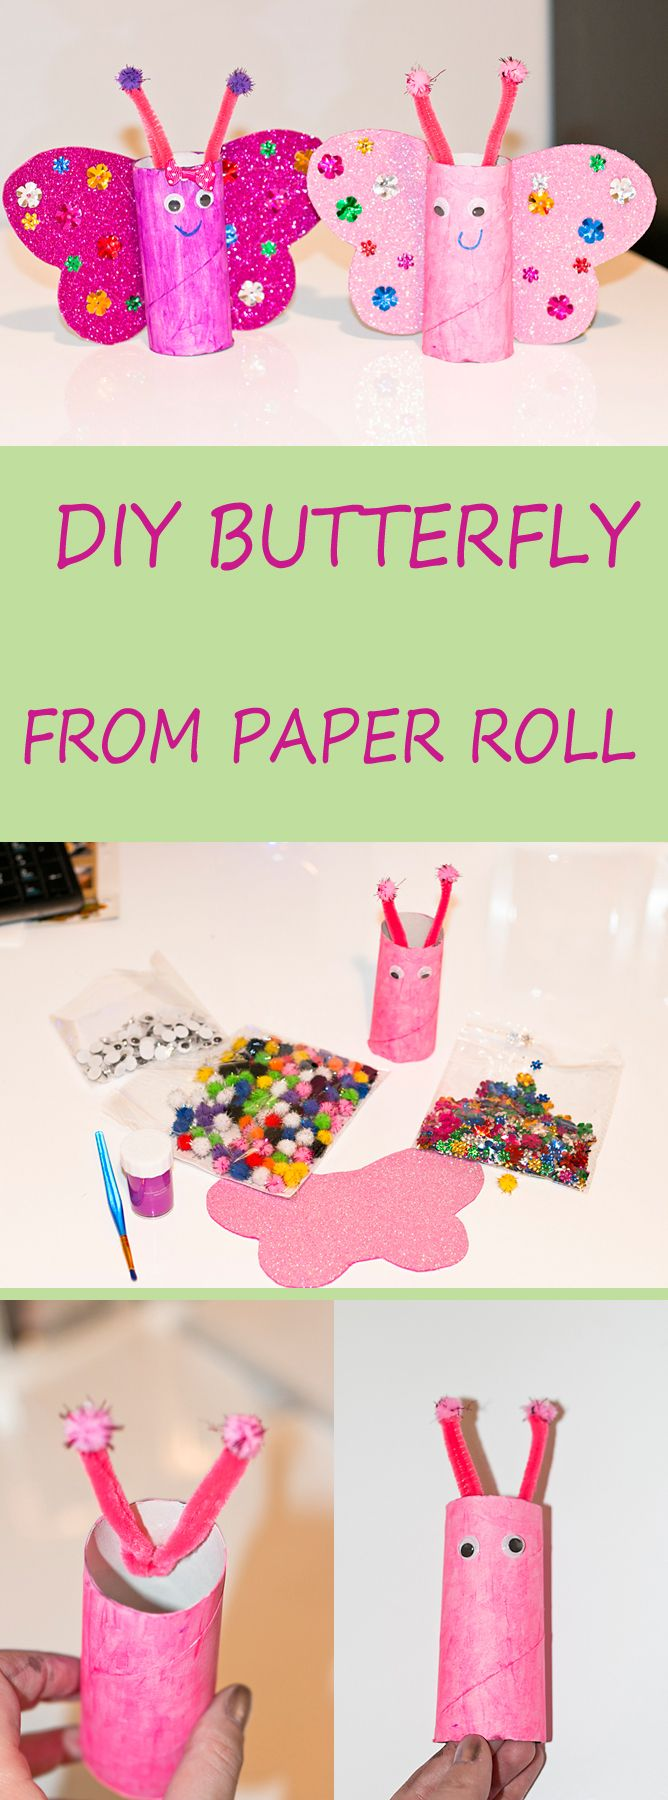  DIY  batterflies from  paper roll.  Quick and  easy. #DIY